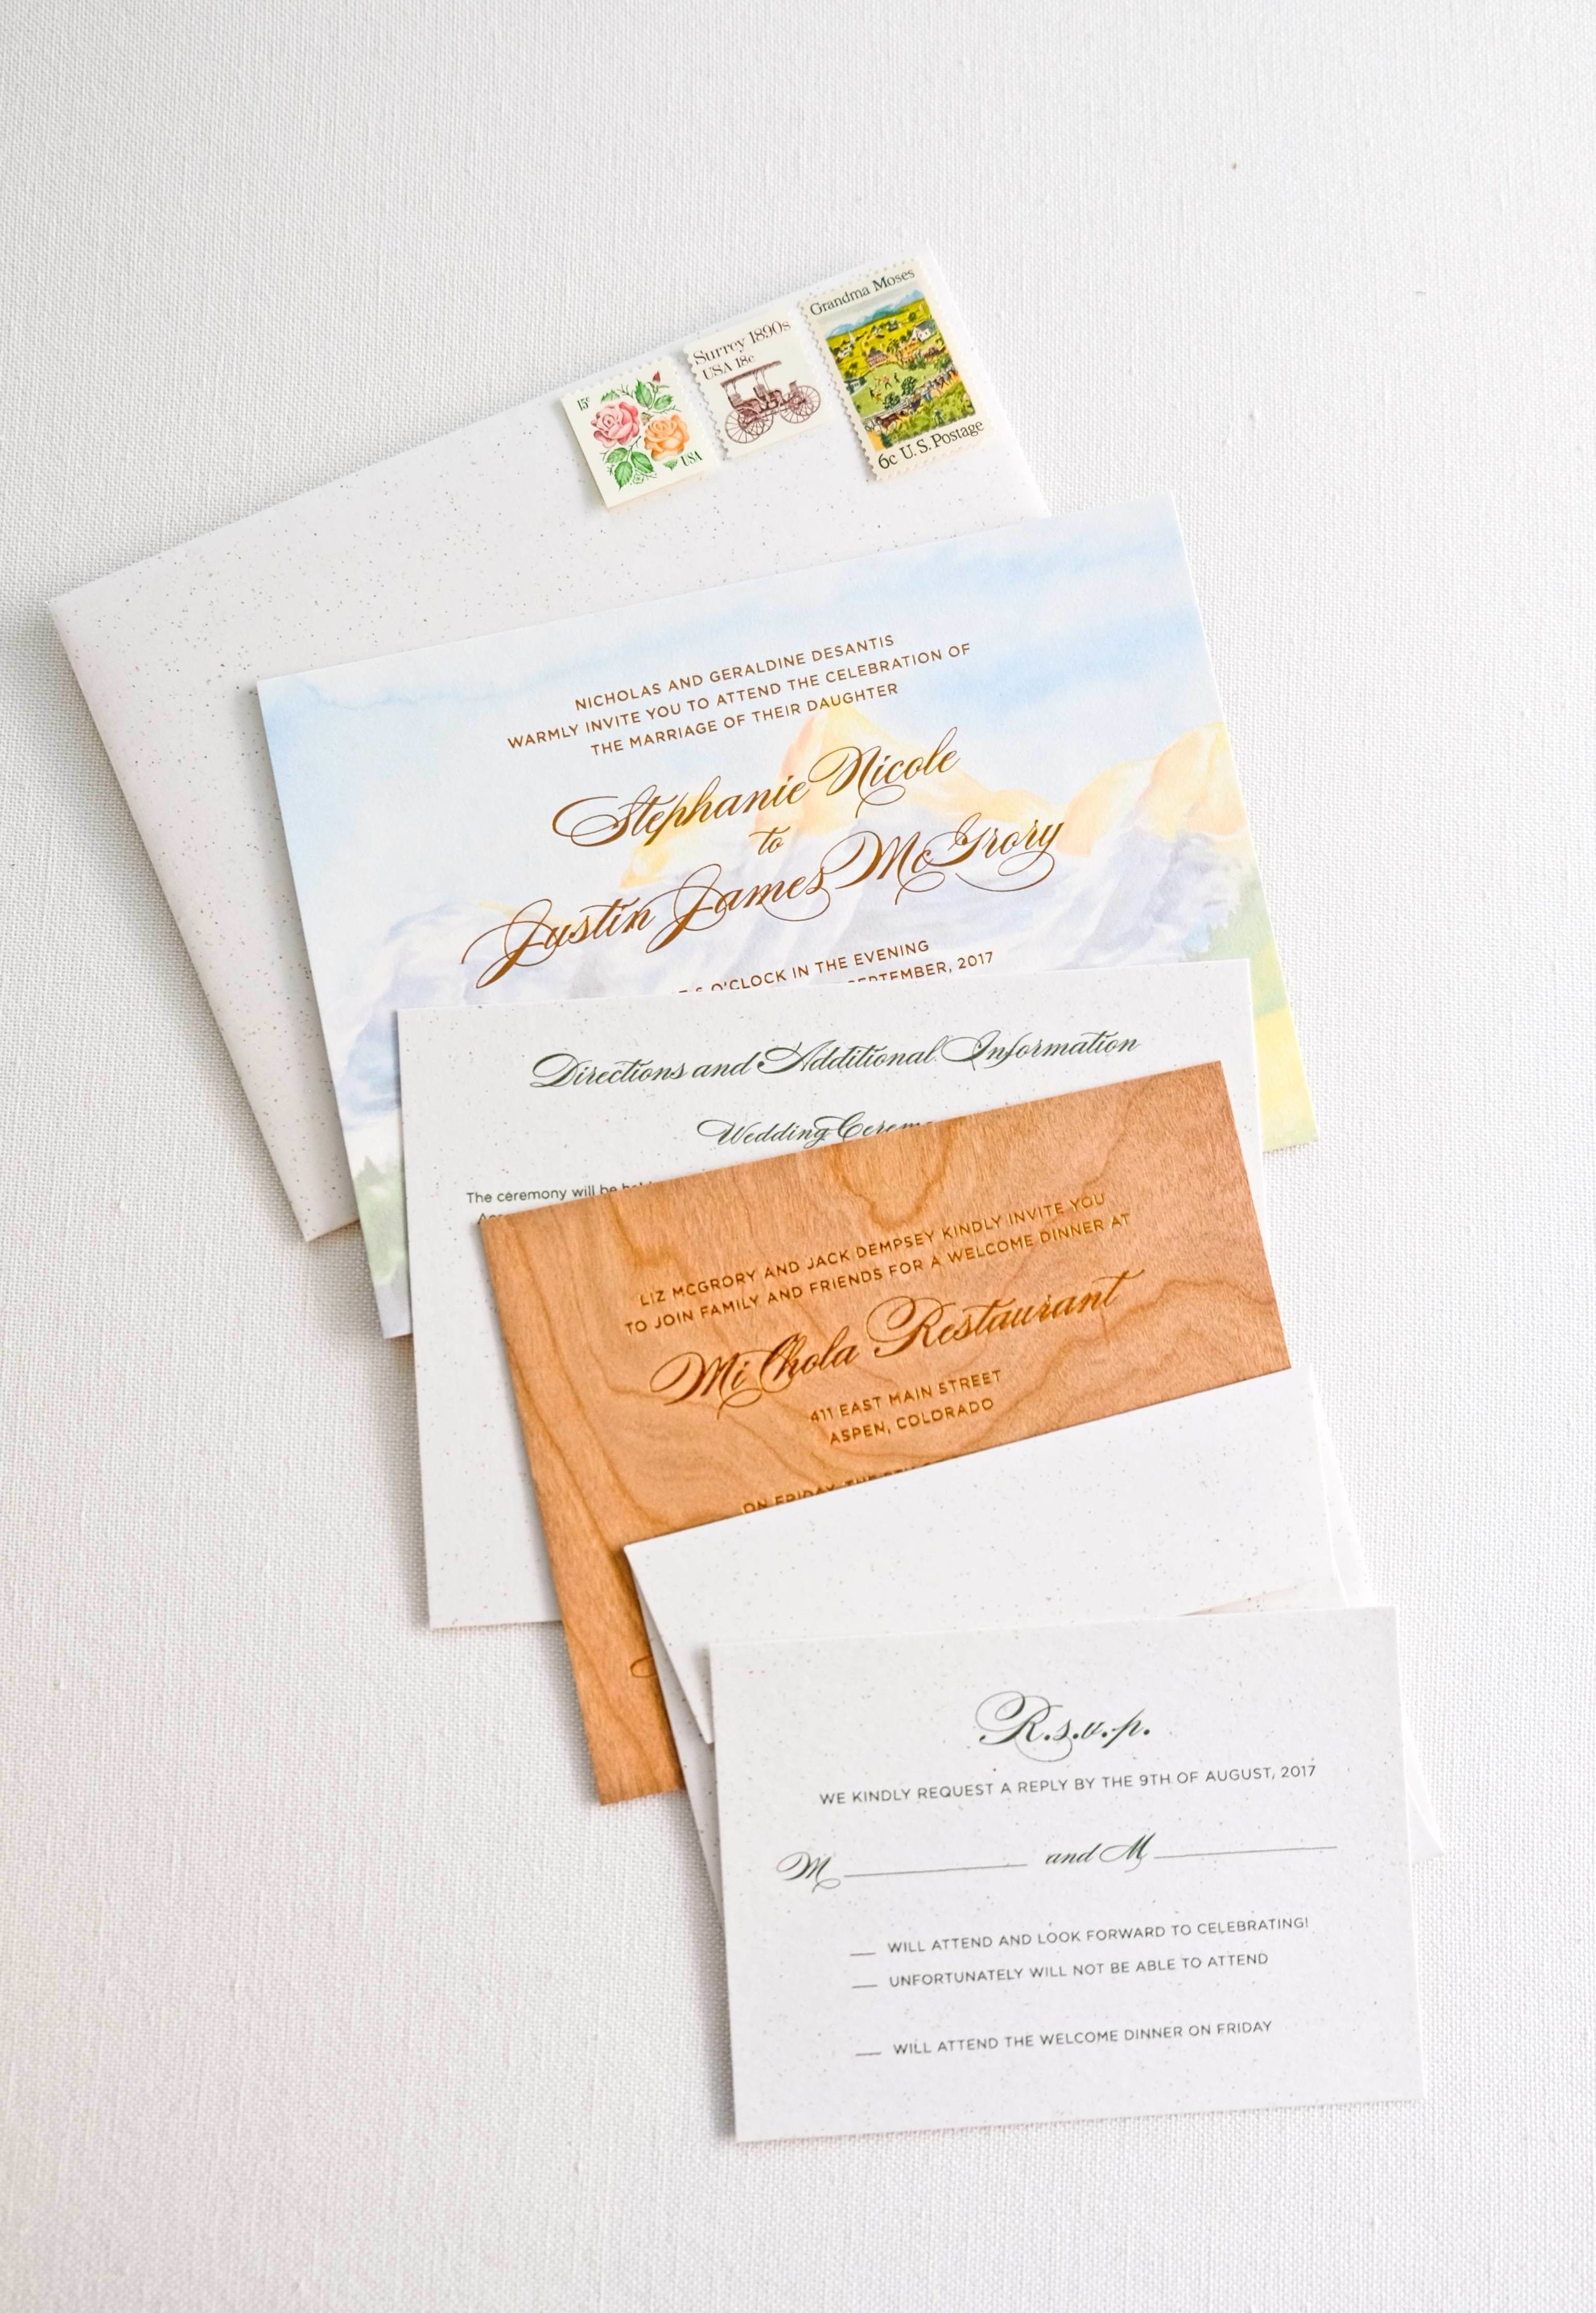 Aspen wedding invitation with watercolor painting and copper foil stamp | www.chavelli.com